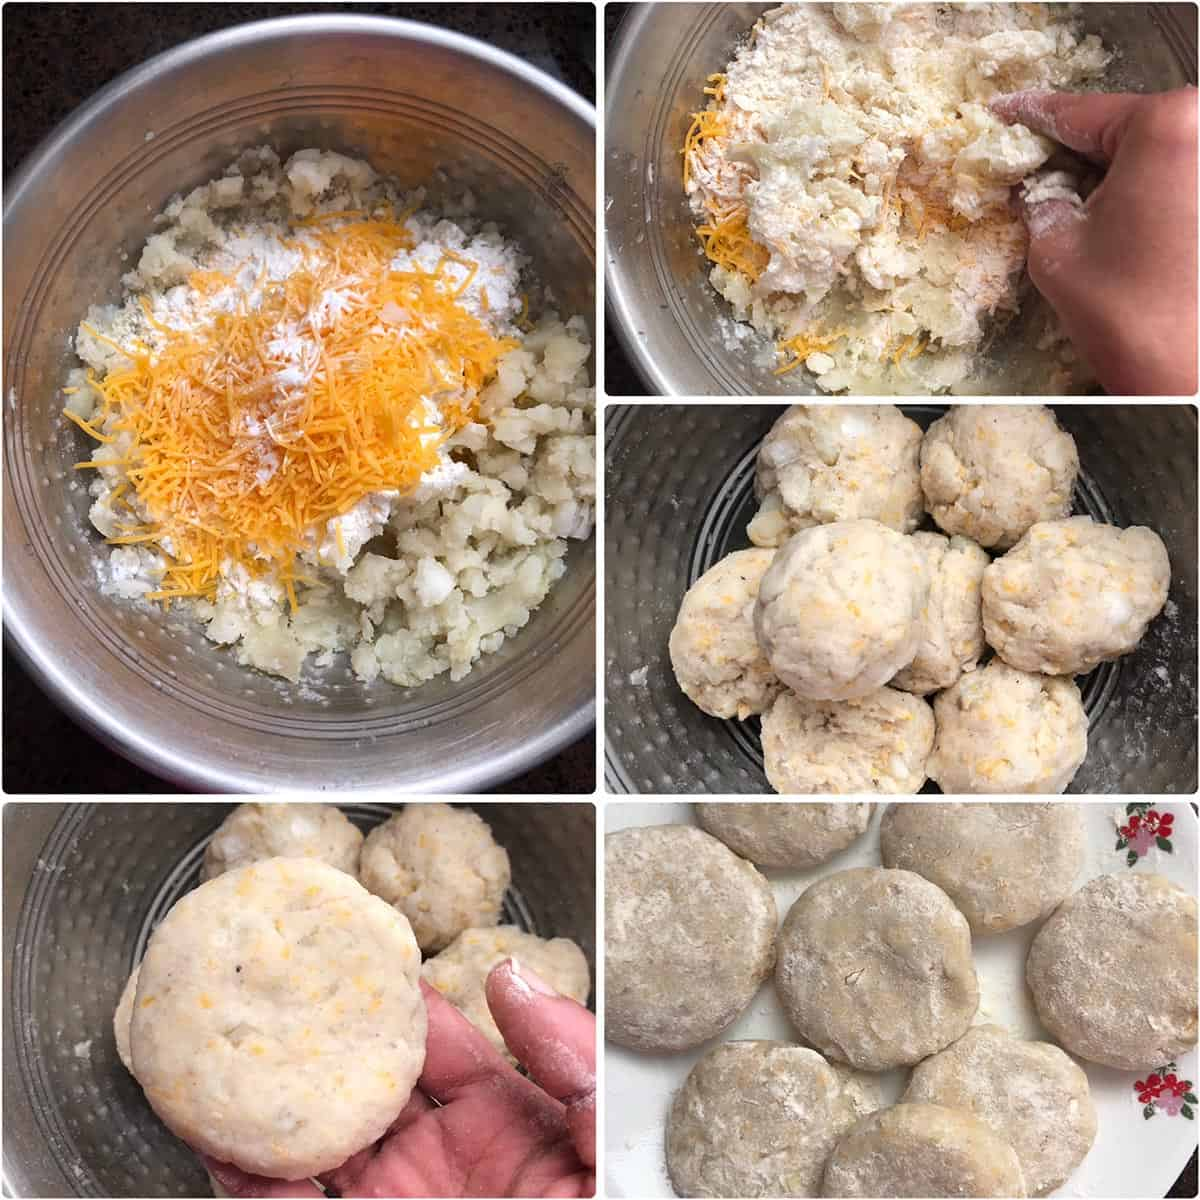 Adding ingredients to mashed potatoes and making into patties